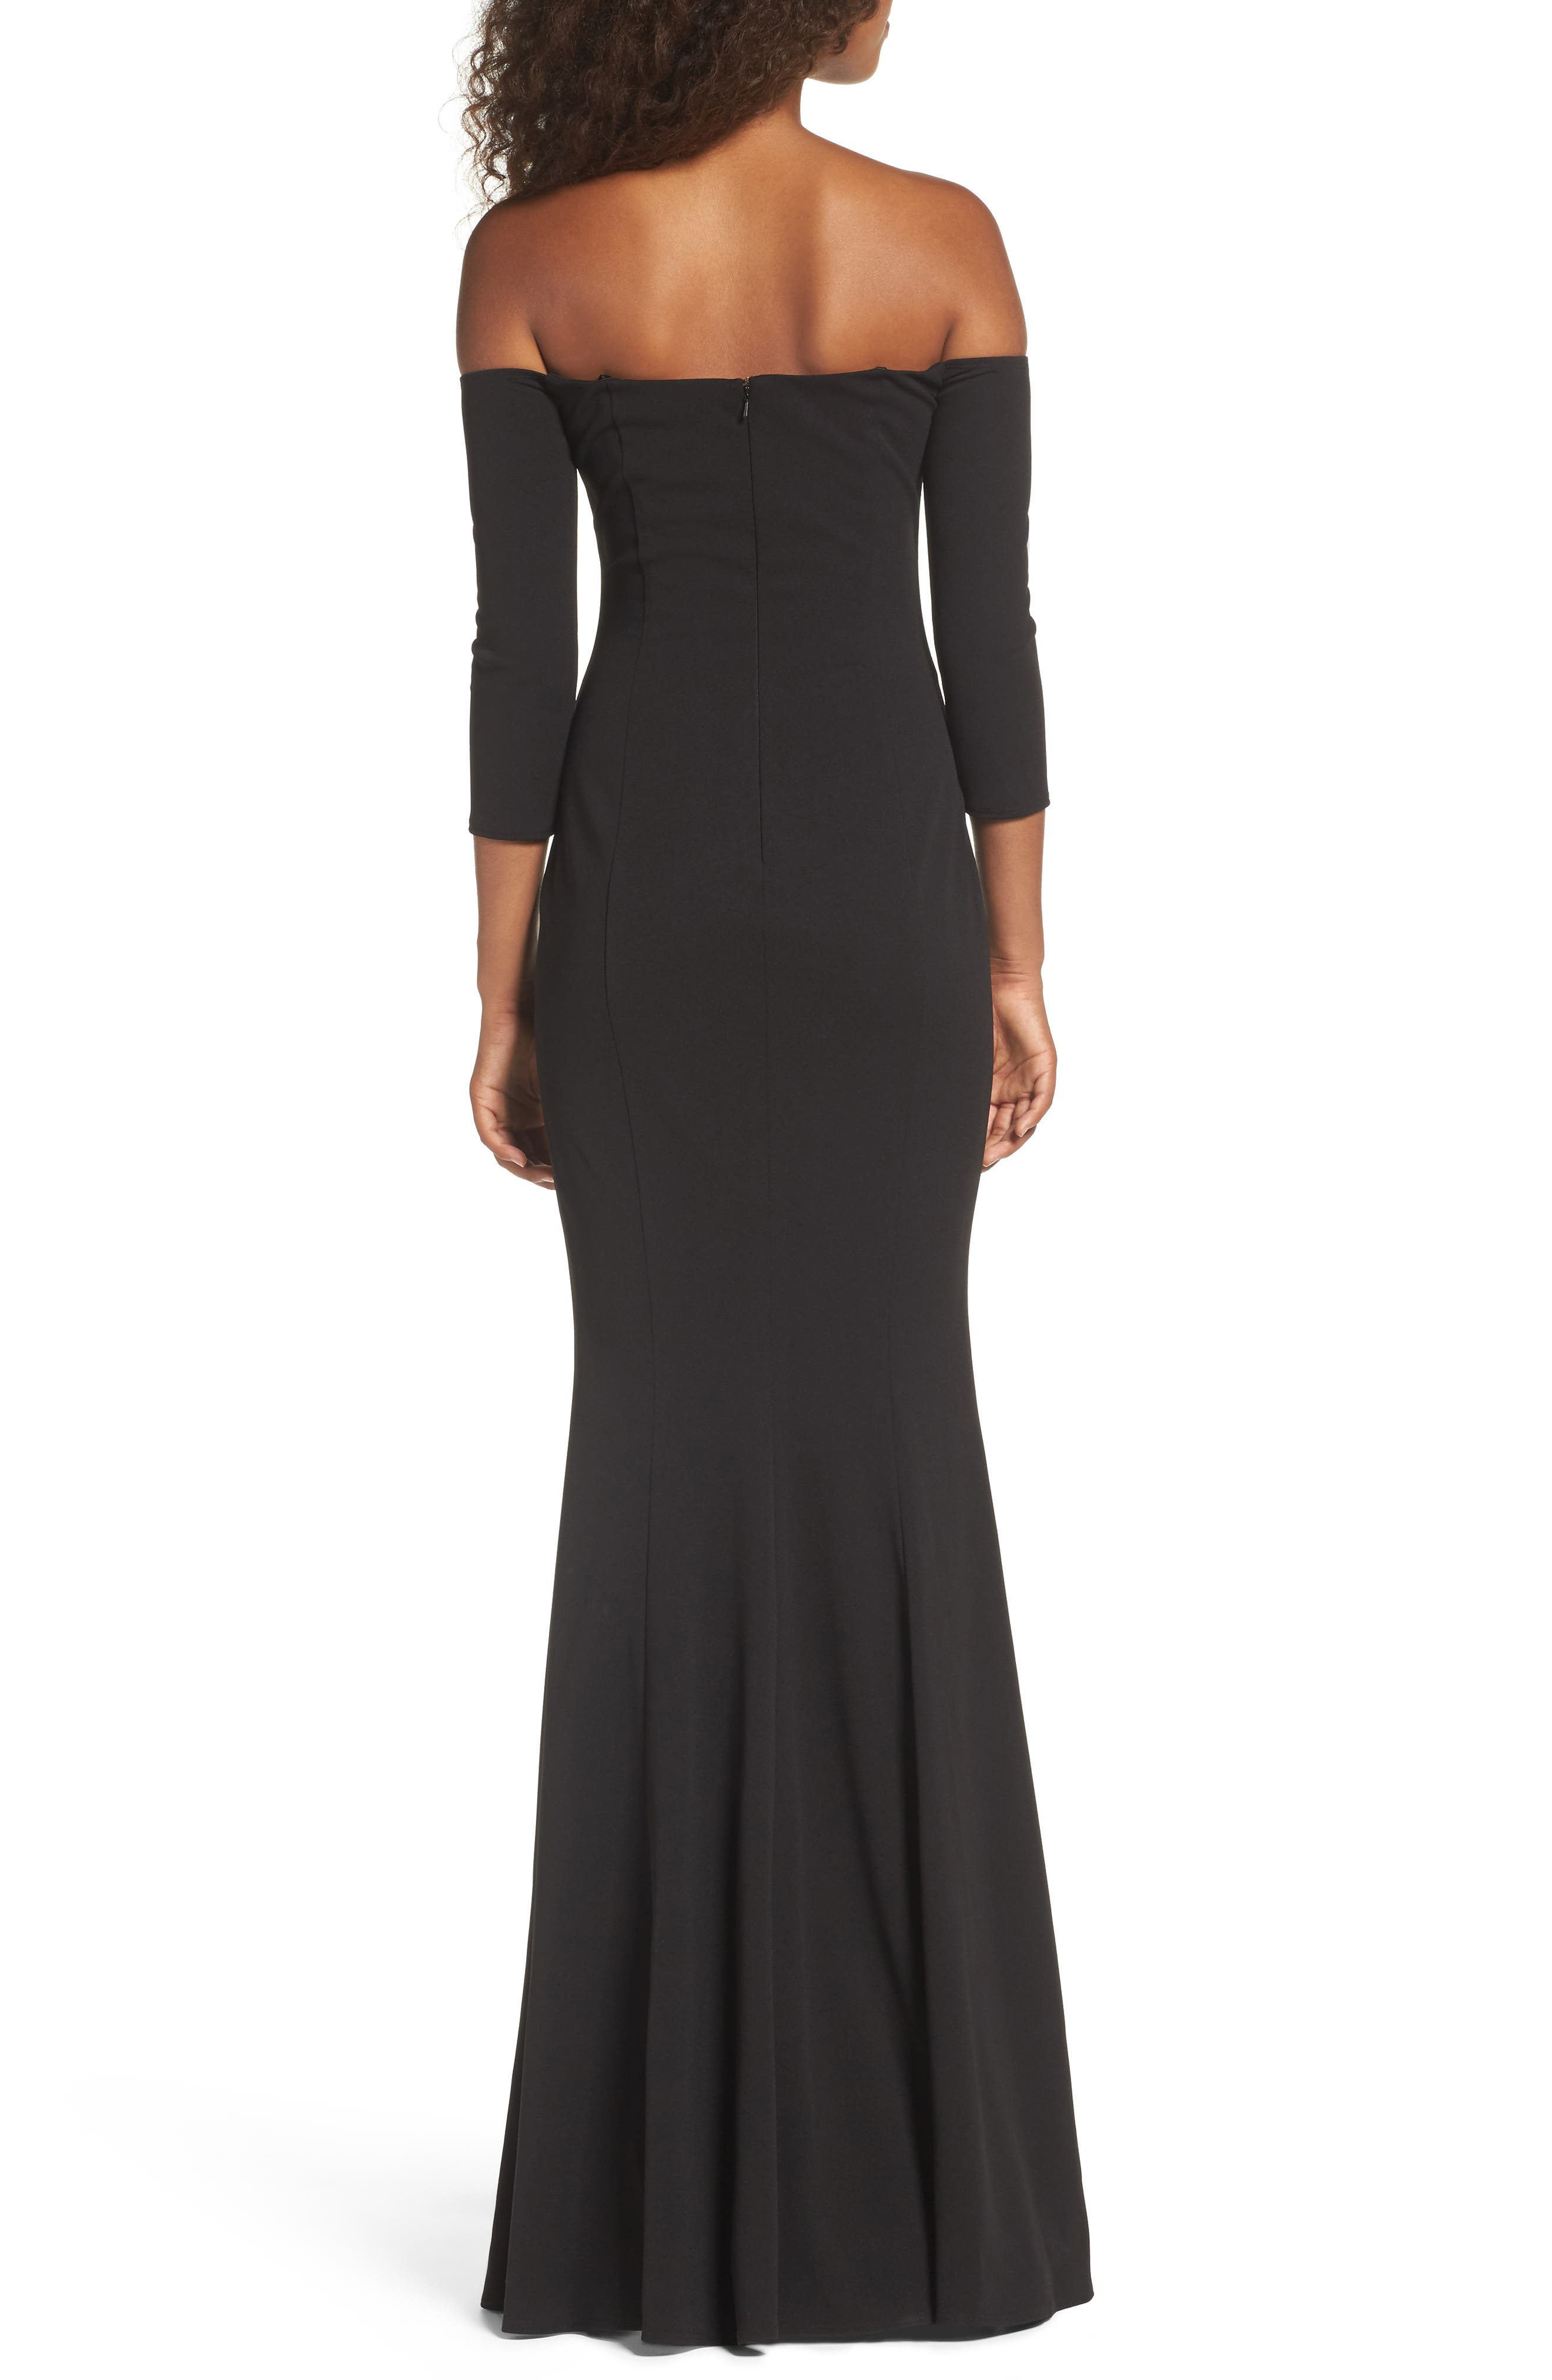 Brentwood Three-Quarter Sleeve Off the Shoulder Gown,                             Alternate thumbnail 2, color,                             BLACK